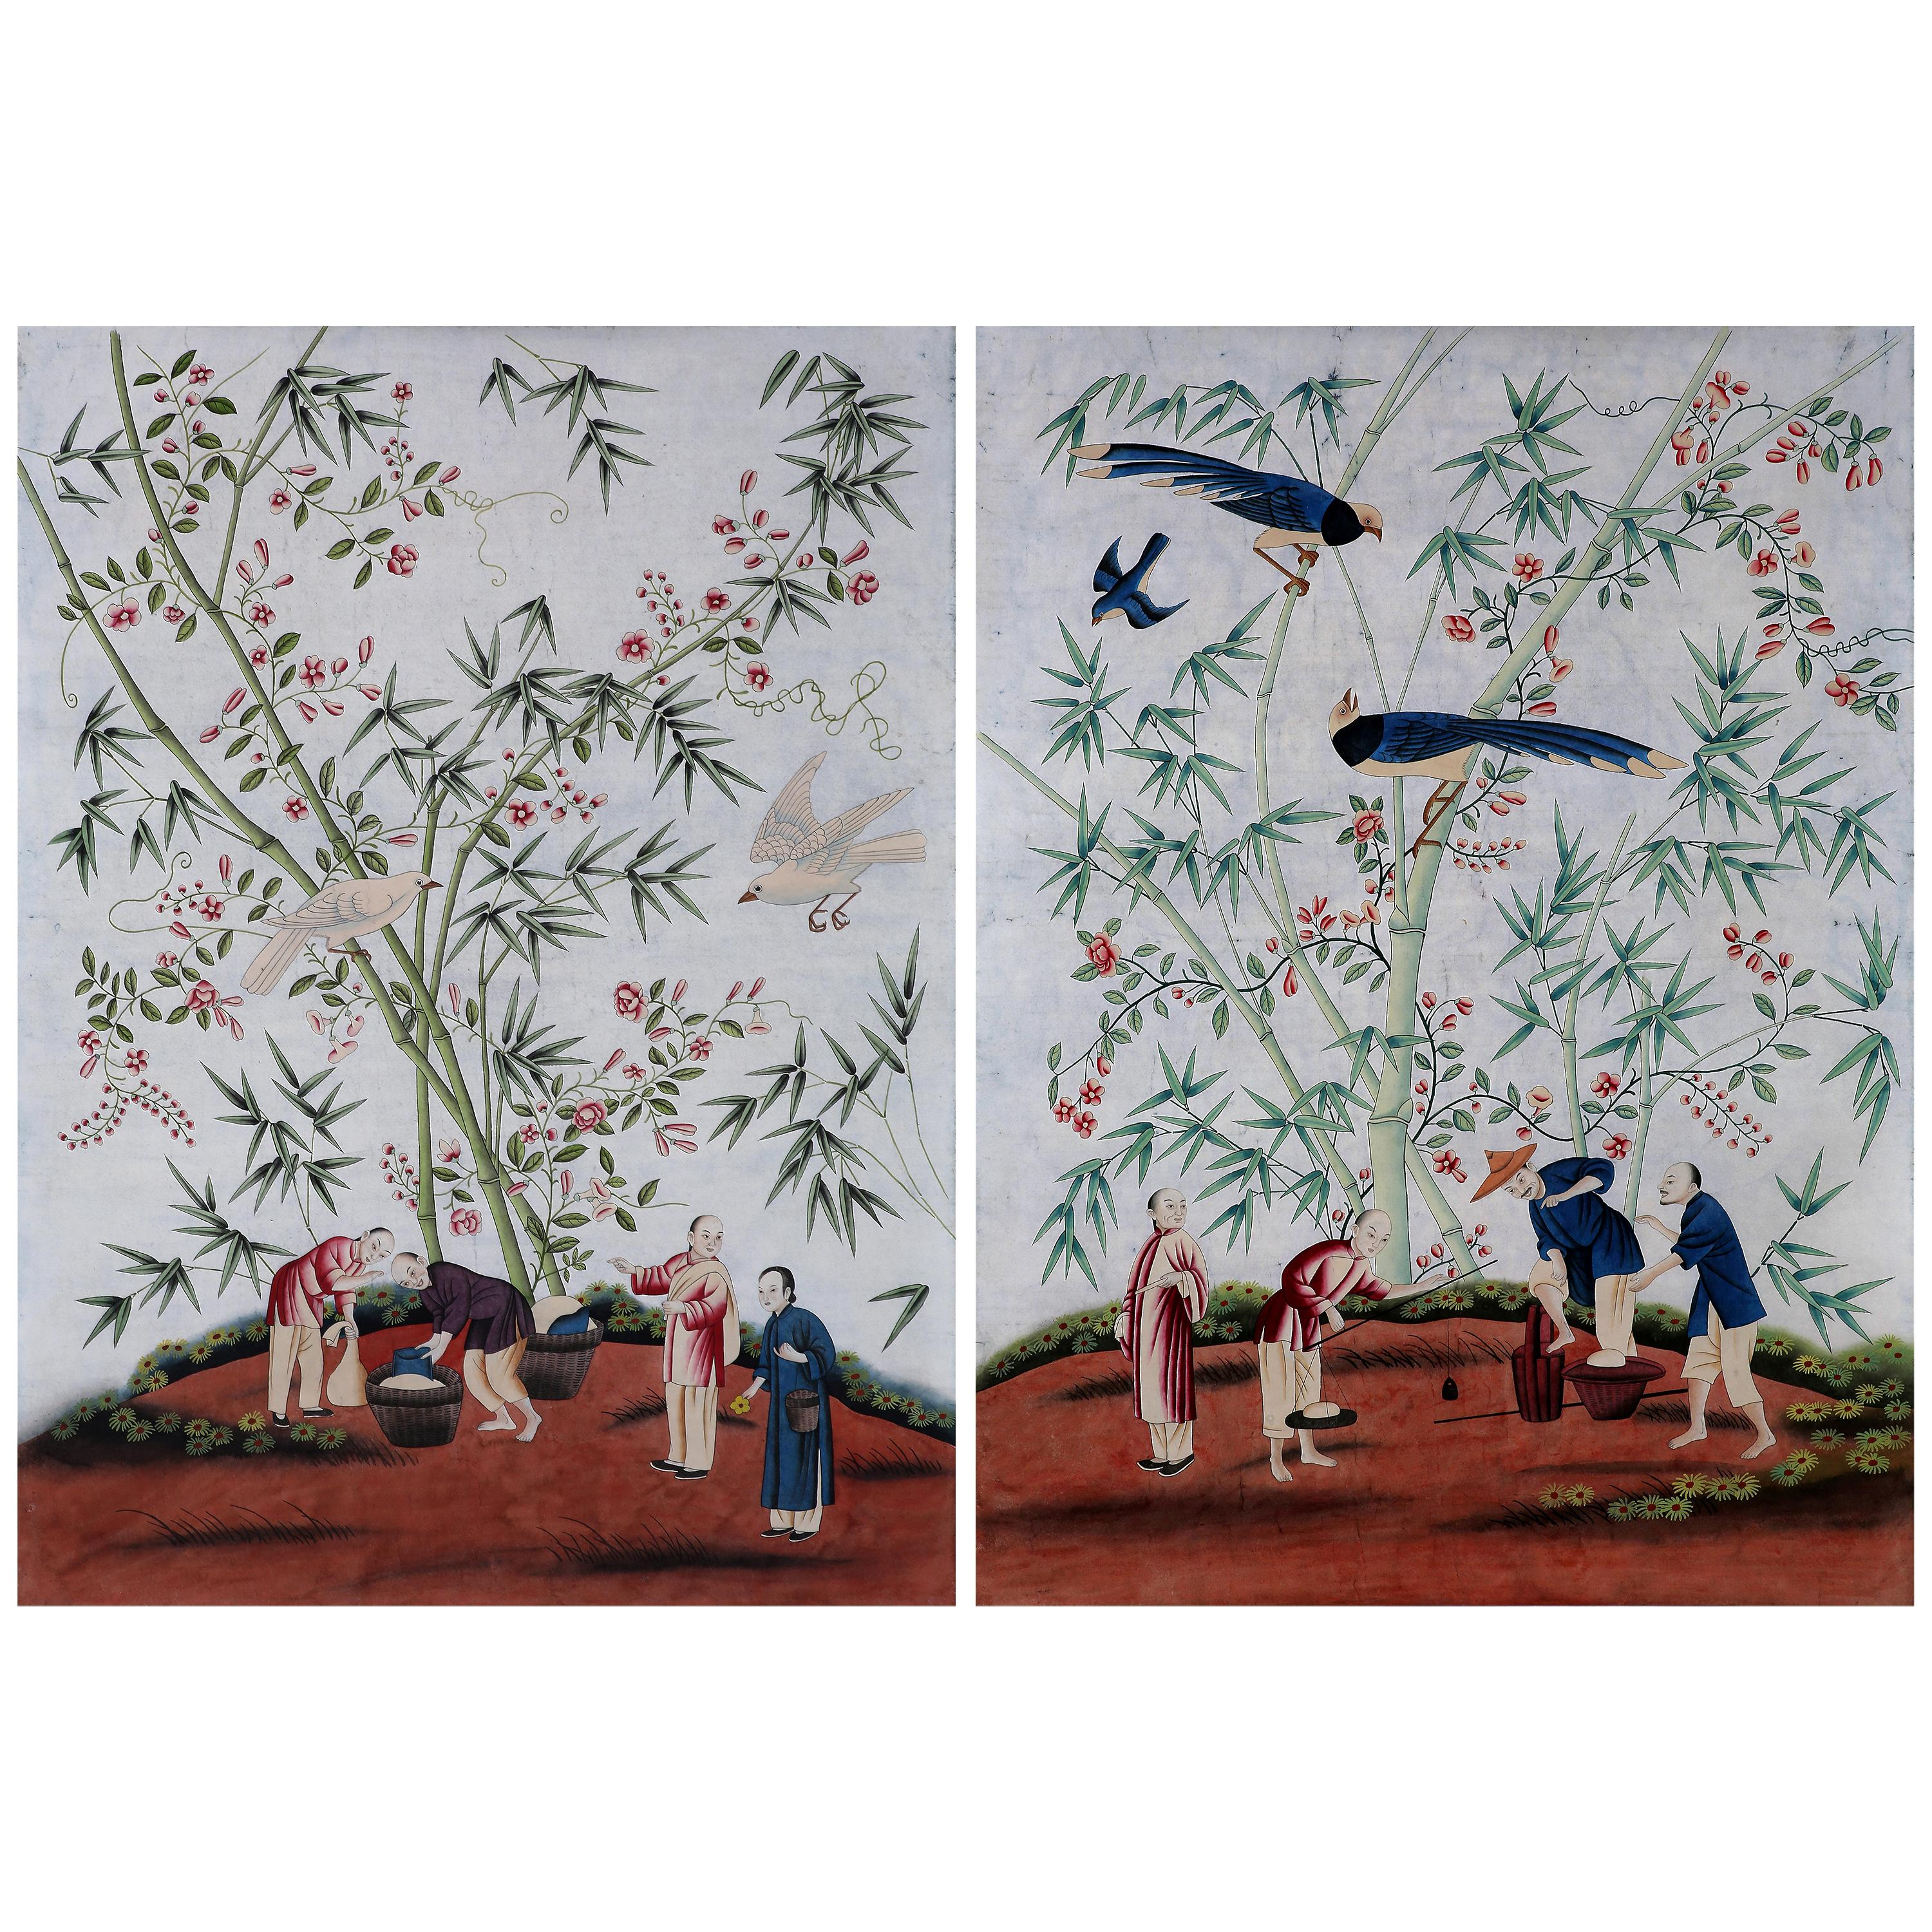 Chinoiserie Hand Painted Wallpaper Panels of Bamboo Grove